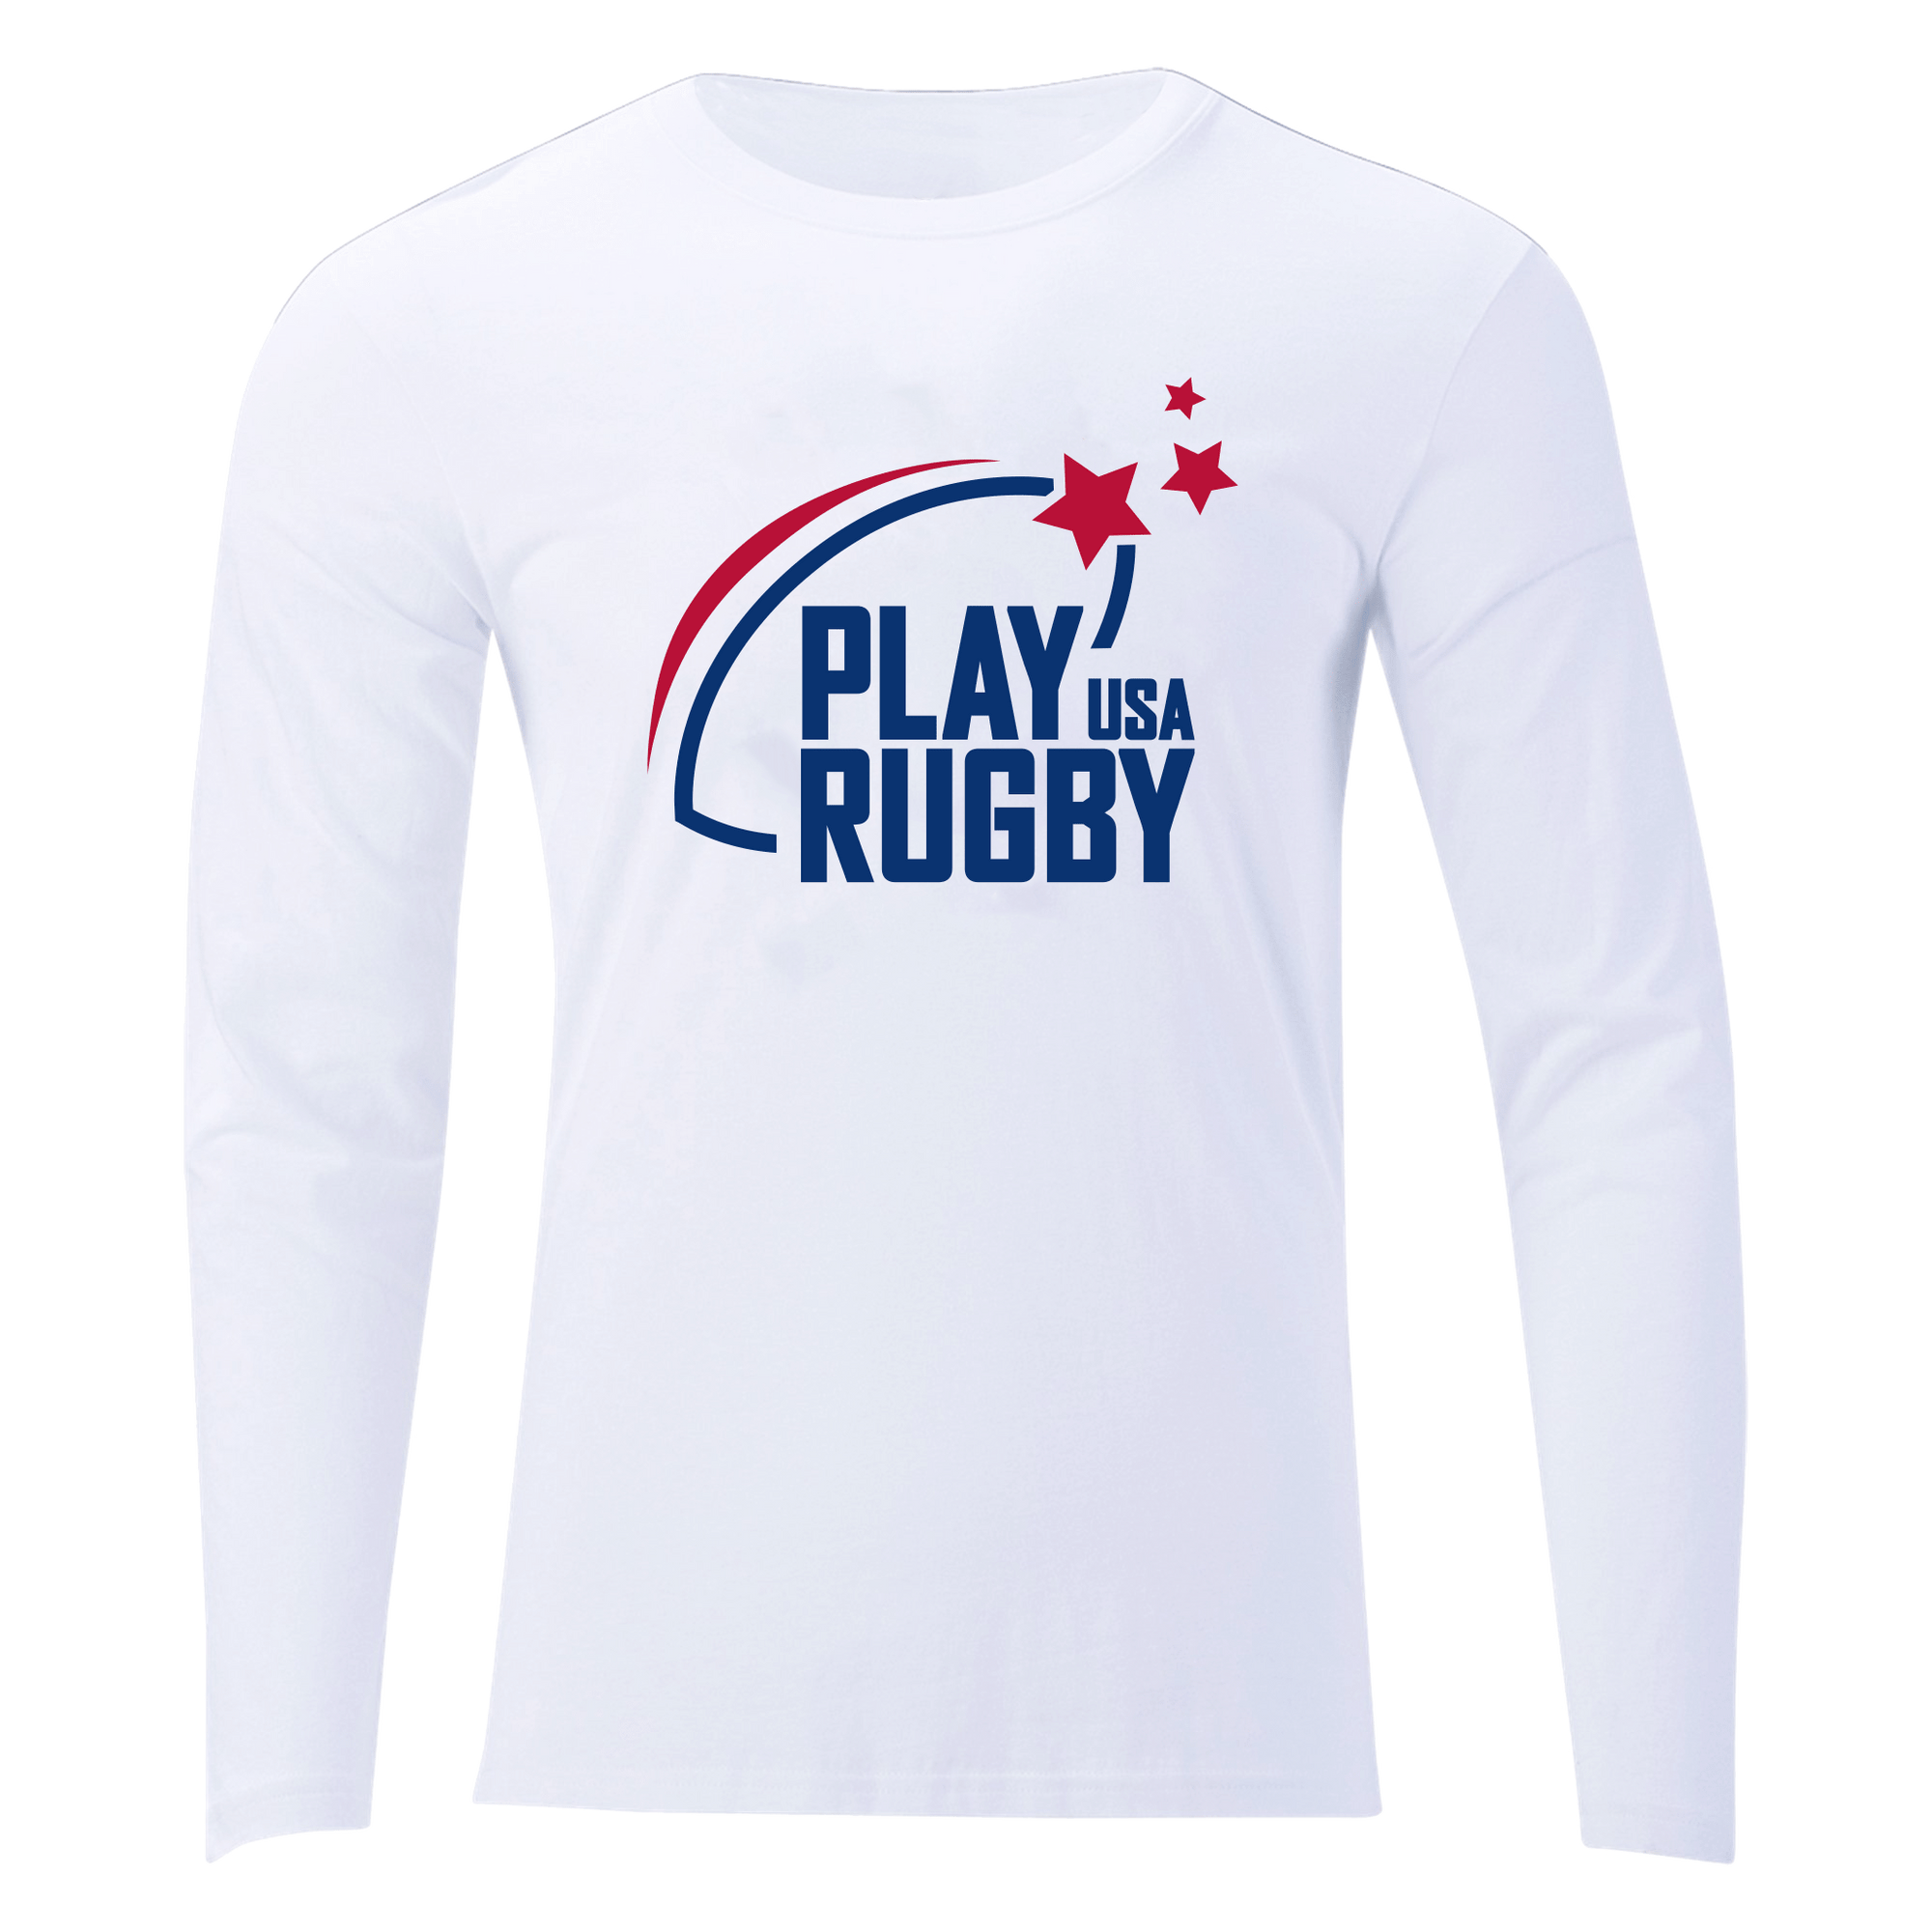 Play Rugby USA Off Field T-Shirt LS White